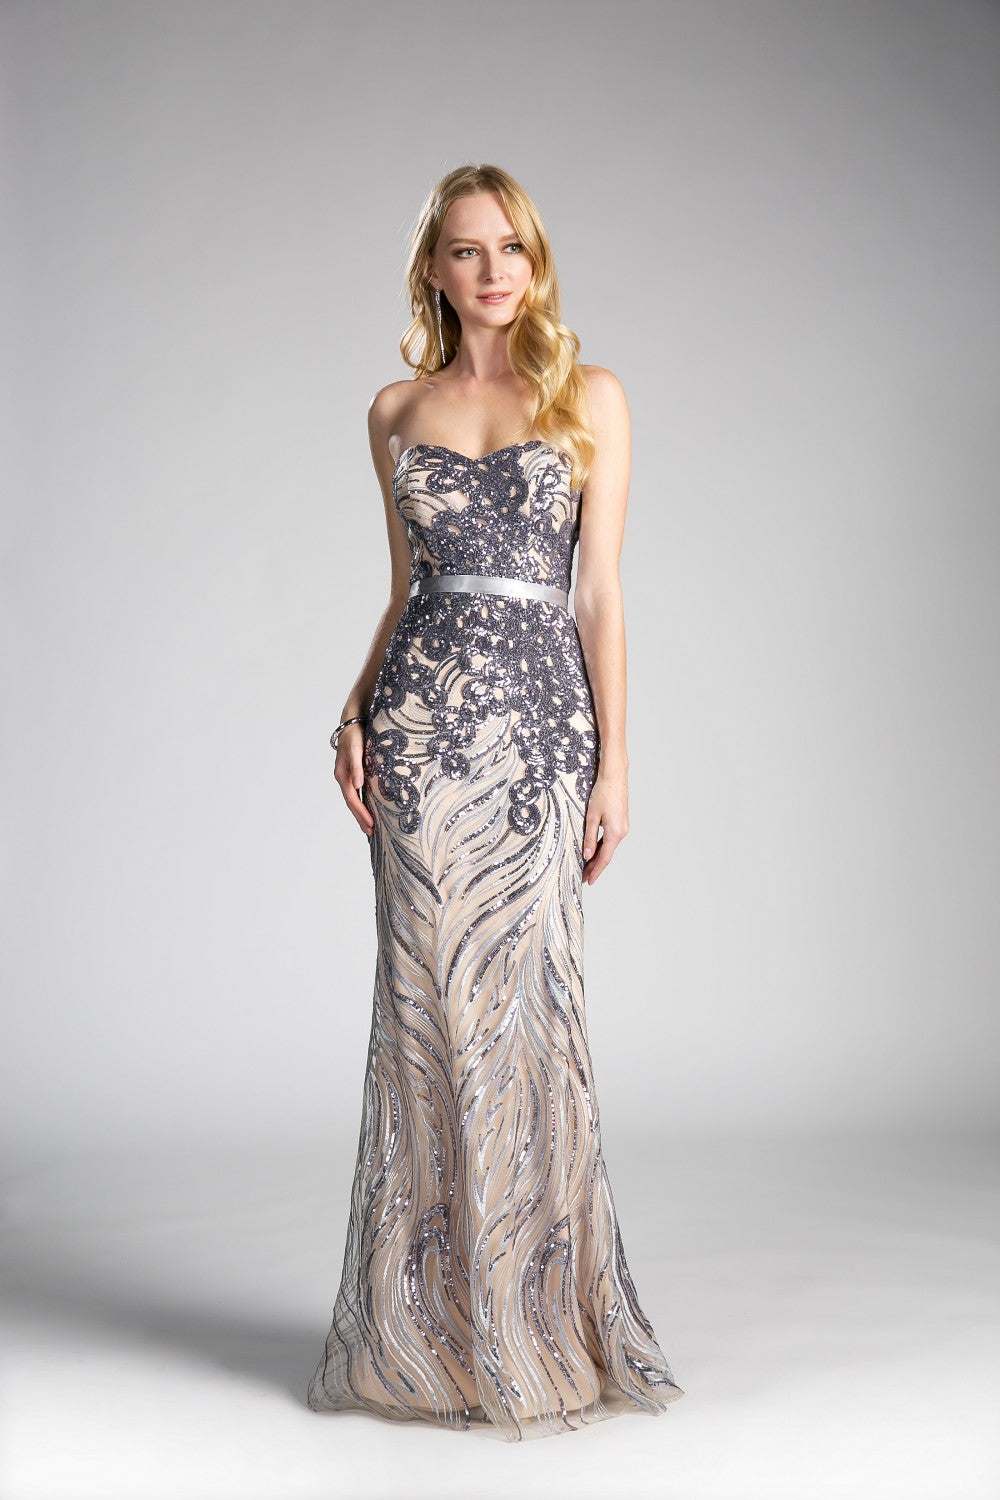 Strapless Fitted Dress With Sequin Beaded Details And Satin Belt